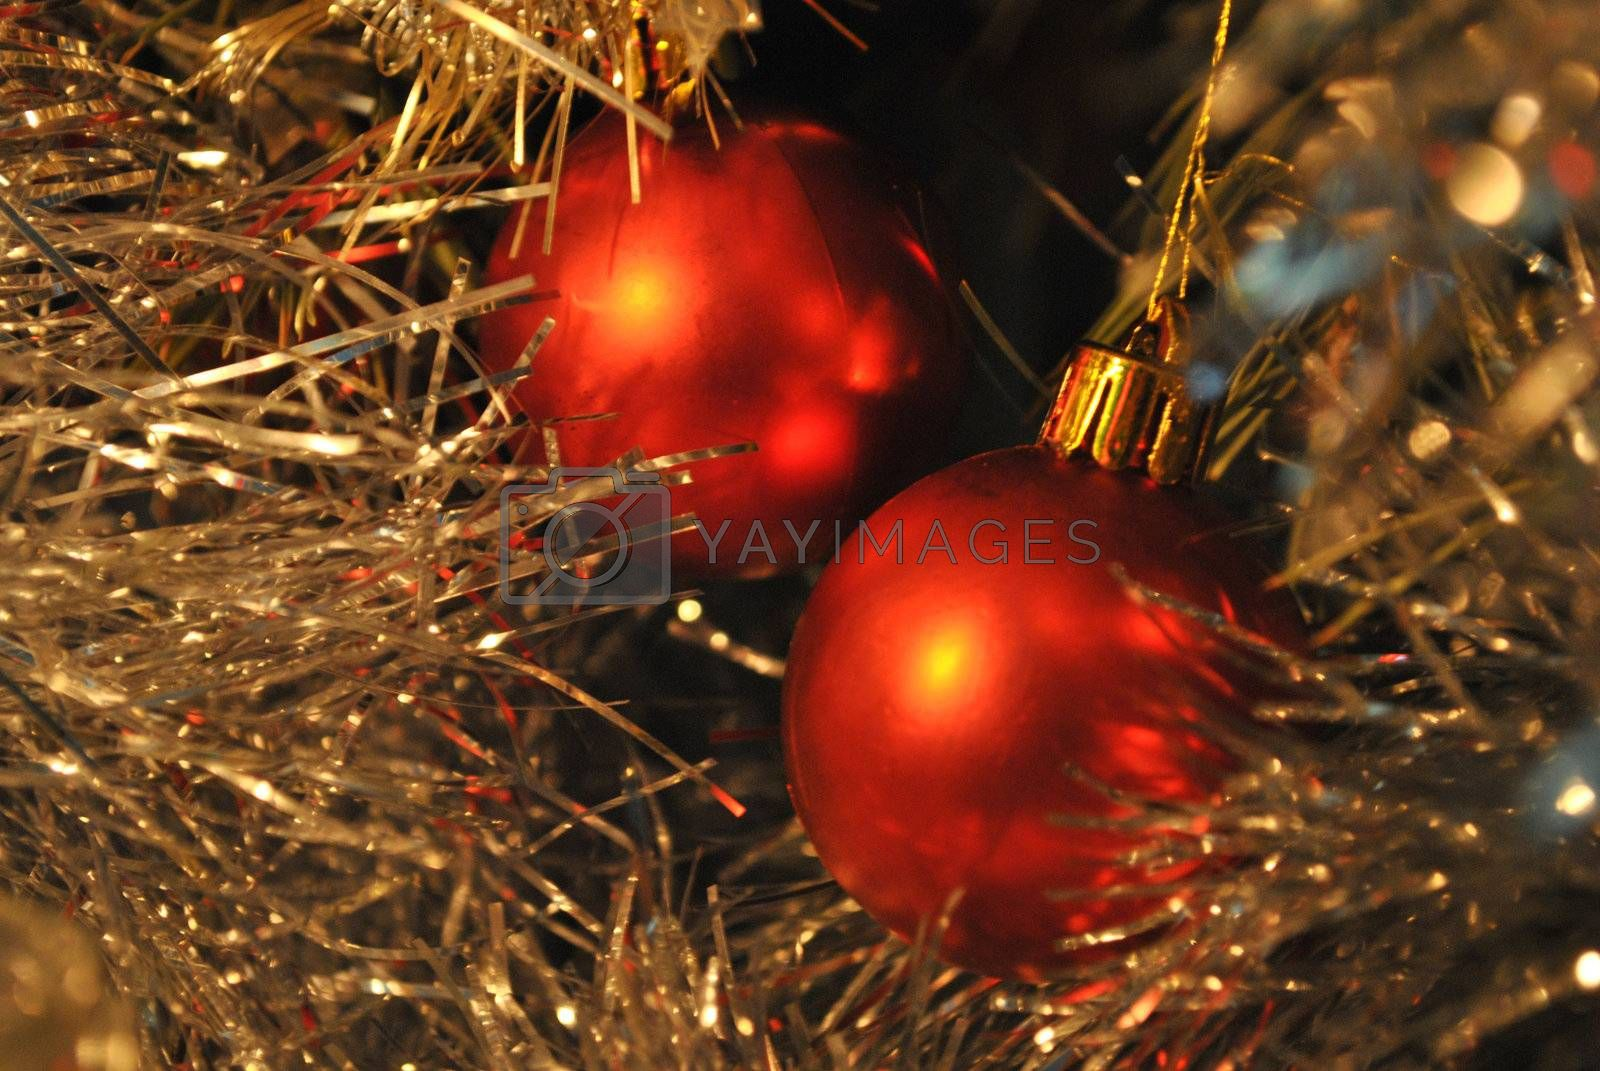 Festive red balls with tinsel